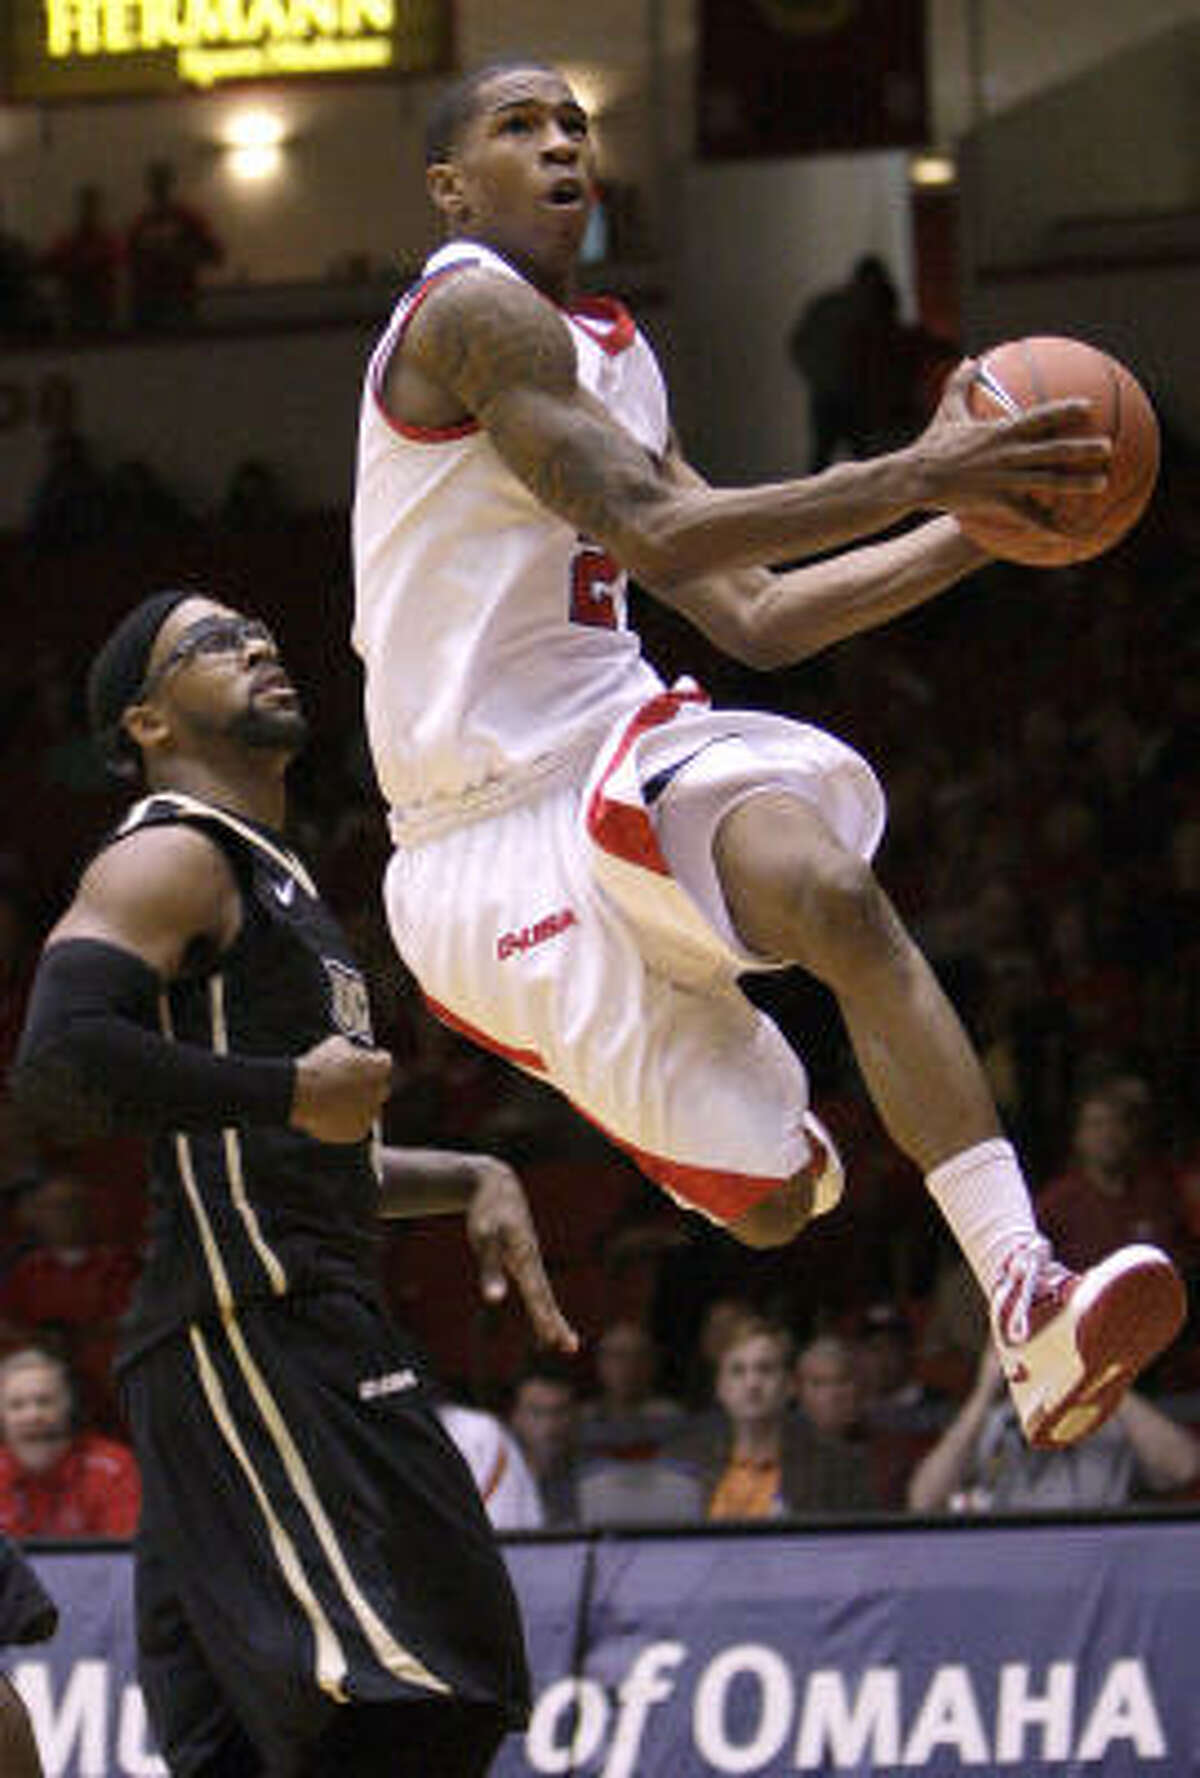 Houston's Zamal Nixon (2) drives the basket past Central Florida's Marcus Jordan (5) for a layup.